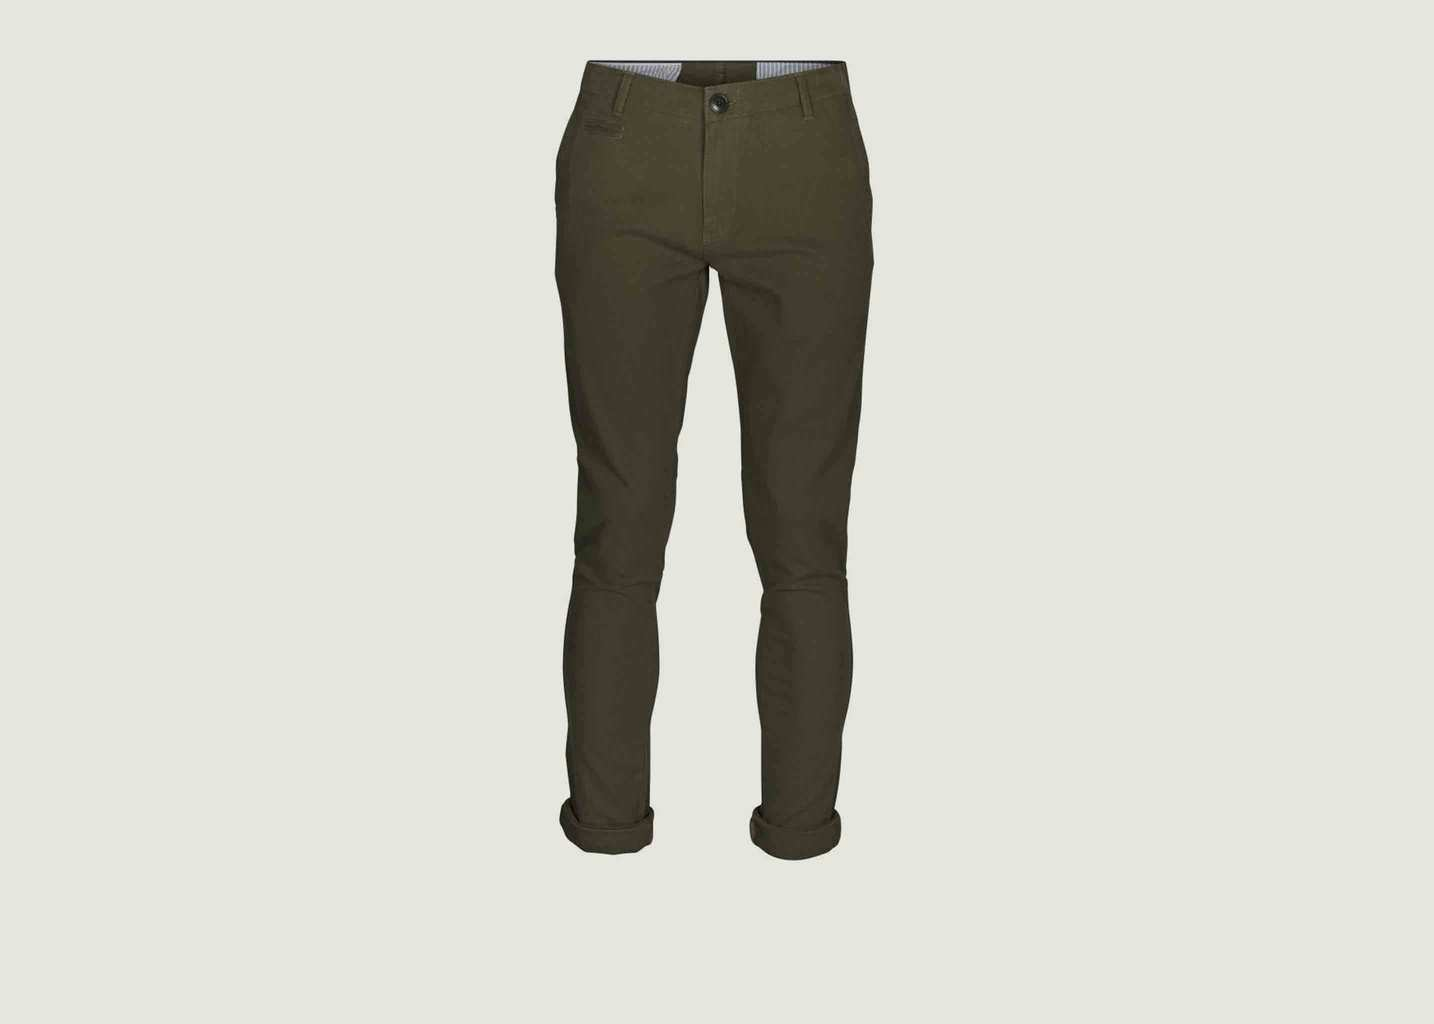 Pantalon Chino Joe - Knowledge Cotton Apparel